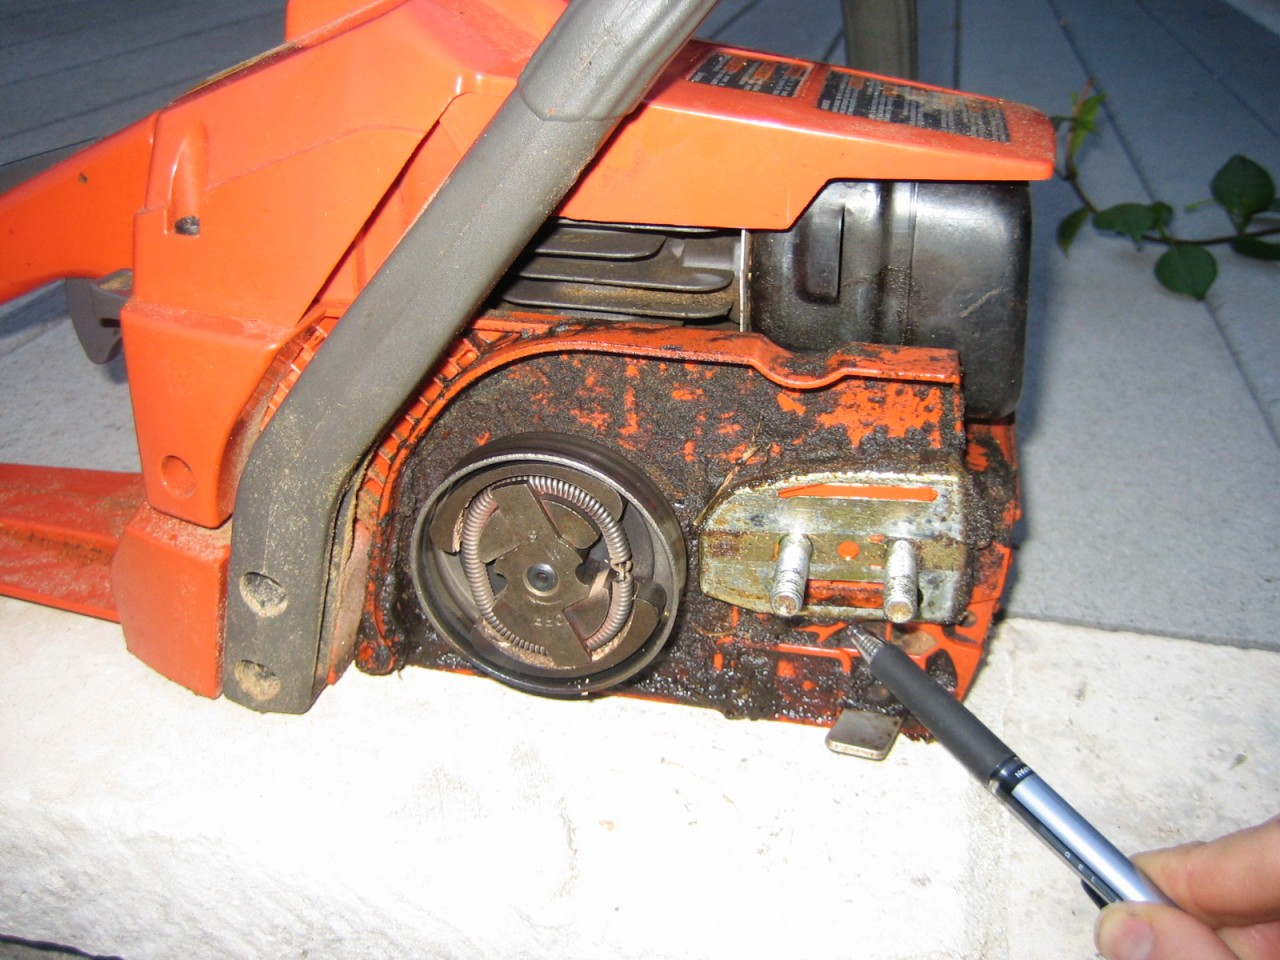 Husqvarna 141 chainsaw no oil on barchain chainsaws forum chainsaws greentooth